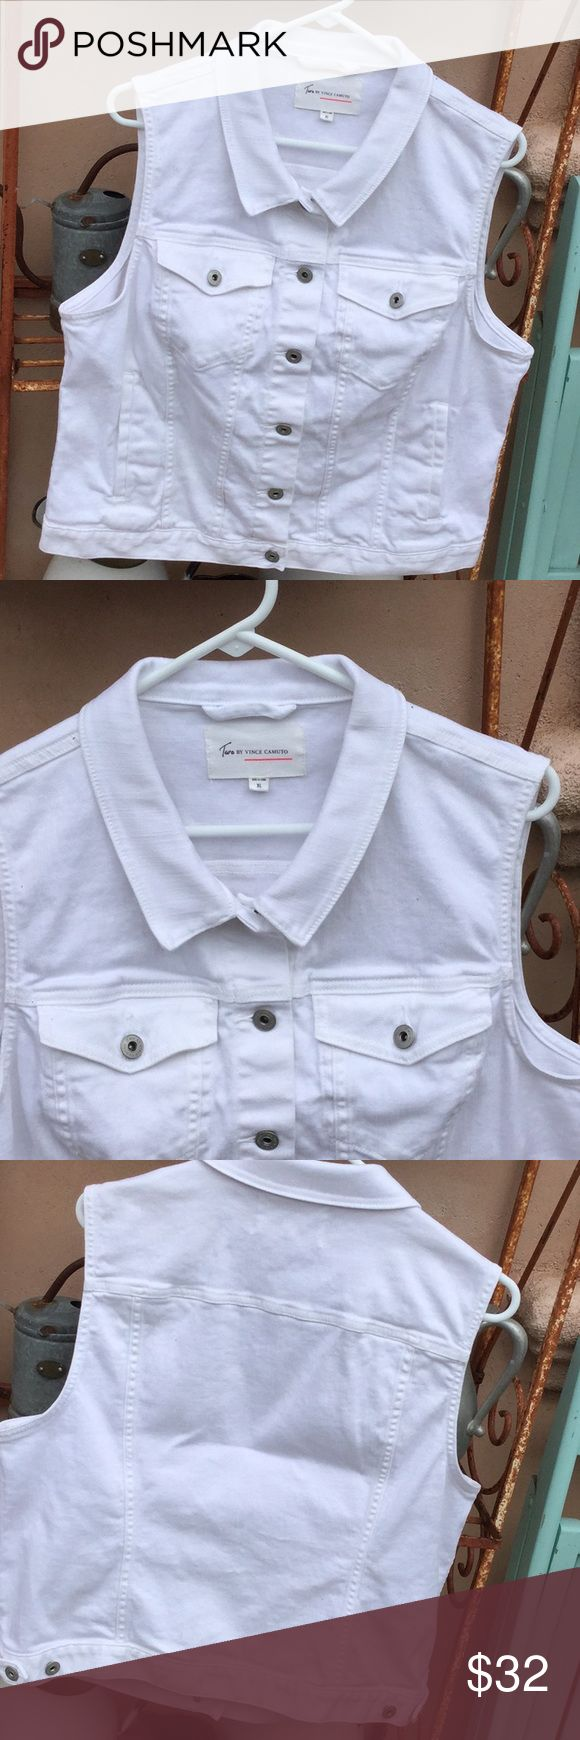 """Vince Camuto White Denim sleeveless Vest Like New It is perfectly white and perfectly spotless..been washed, so ck measurements since tag calls XL.22"""" long, 22"""" underarm to underarm. Two by Vince Camuto Jackets & Coats Vests"""